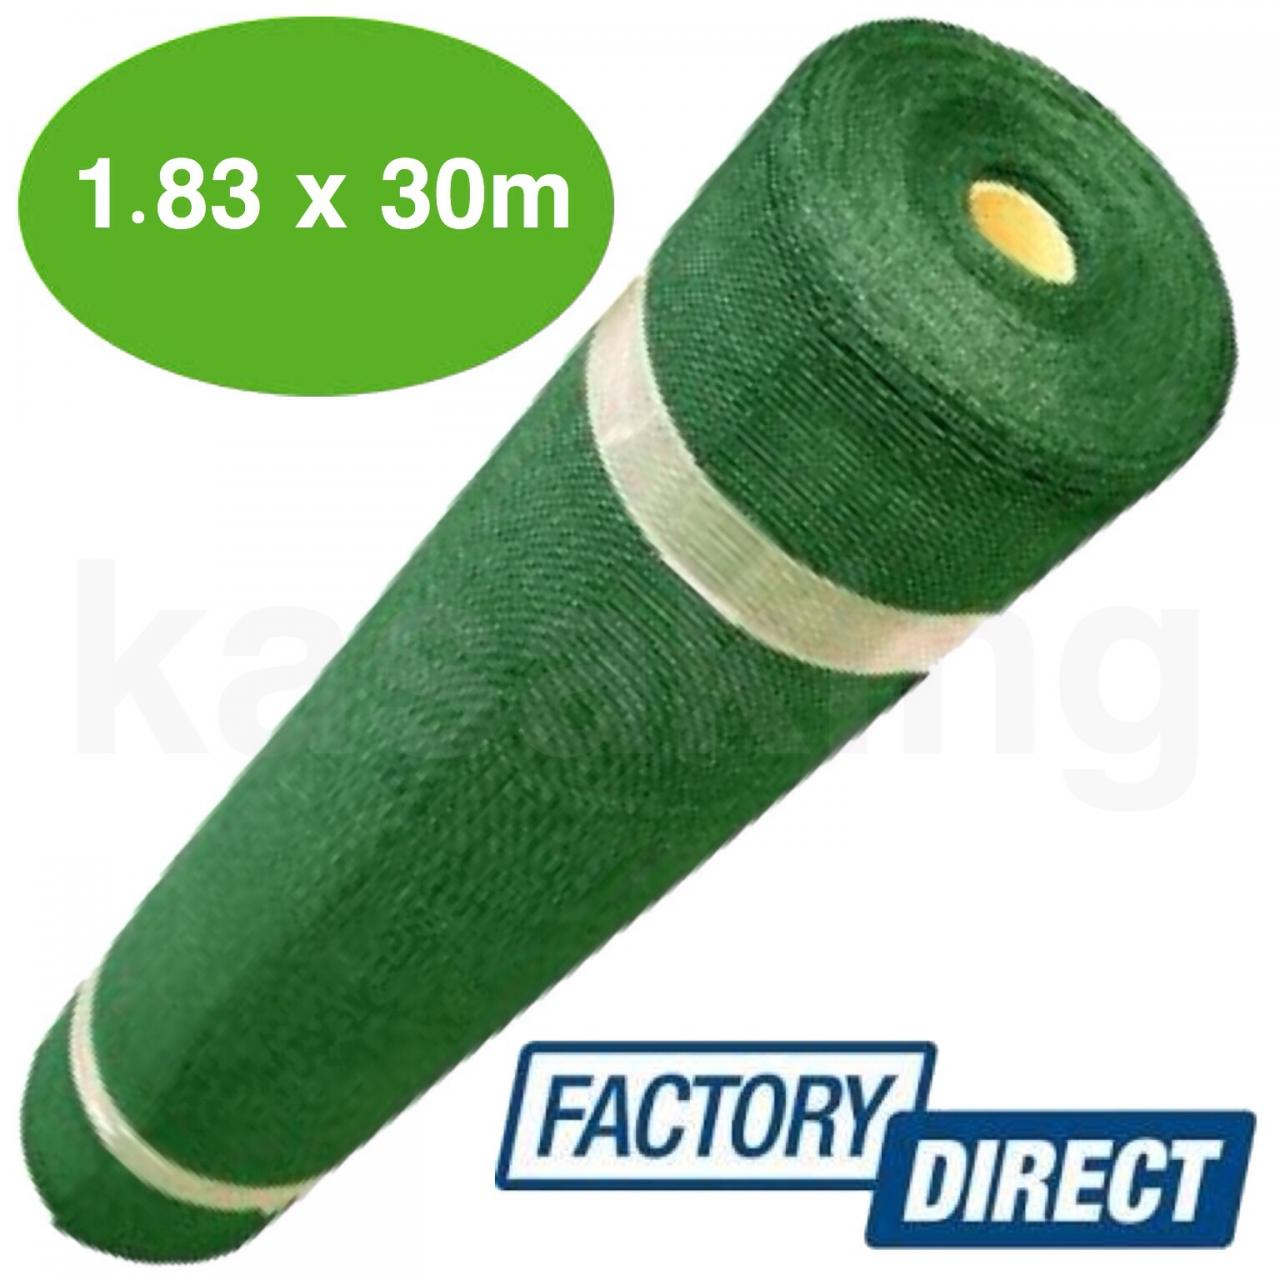 1.83 x 30m green 90% shade cloth